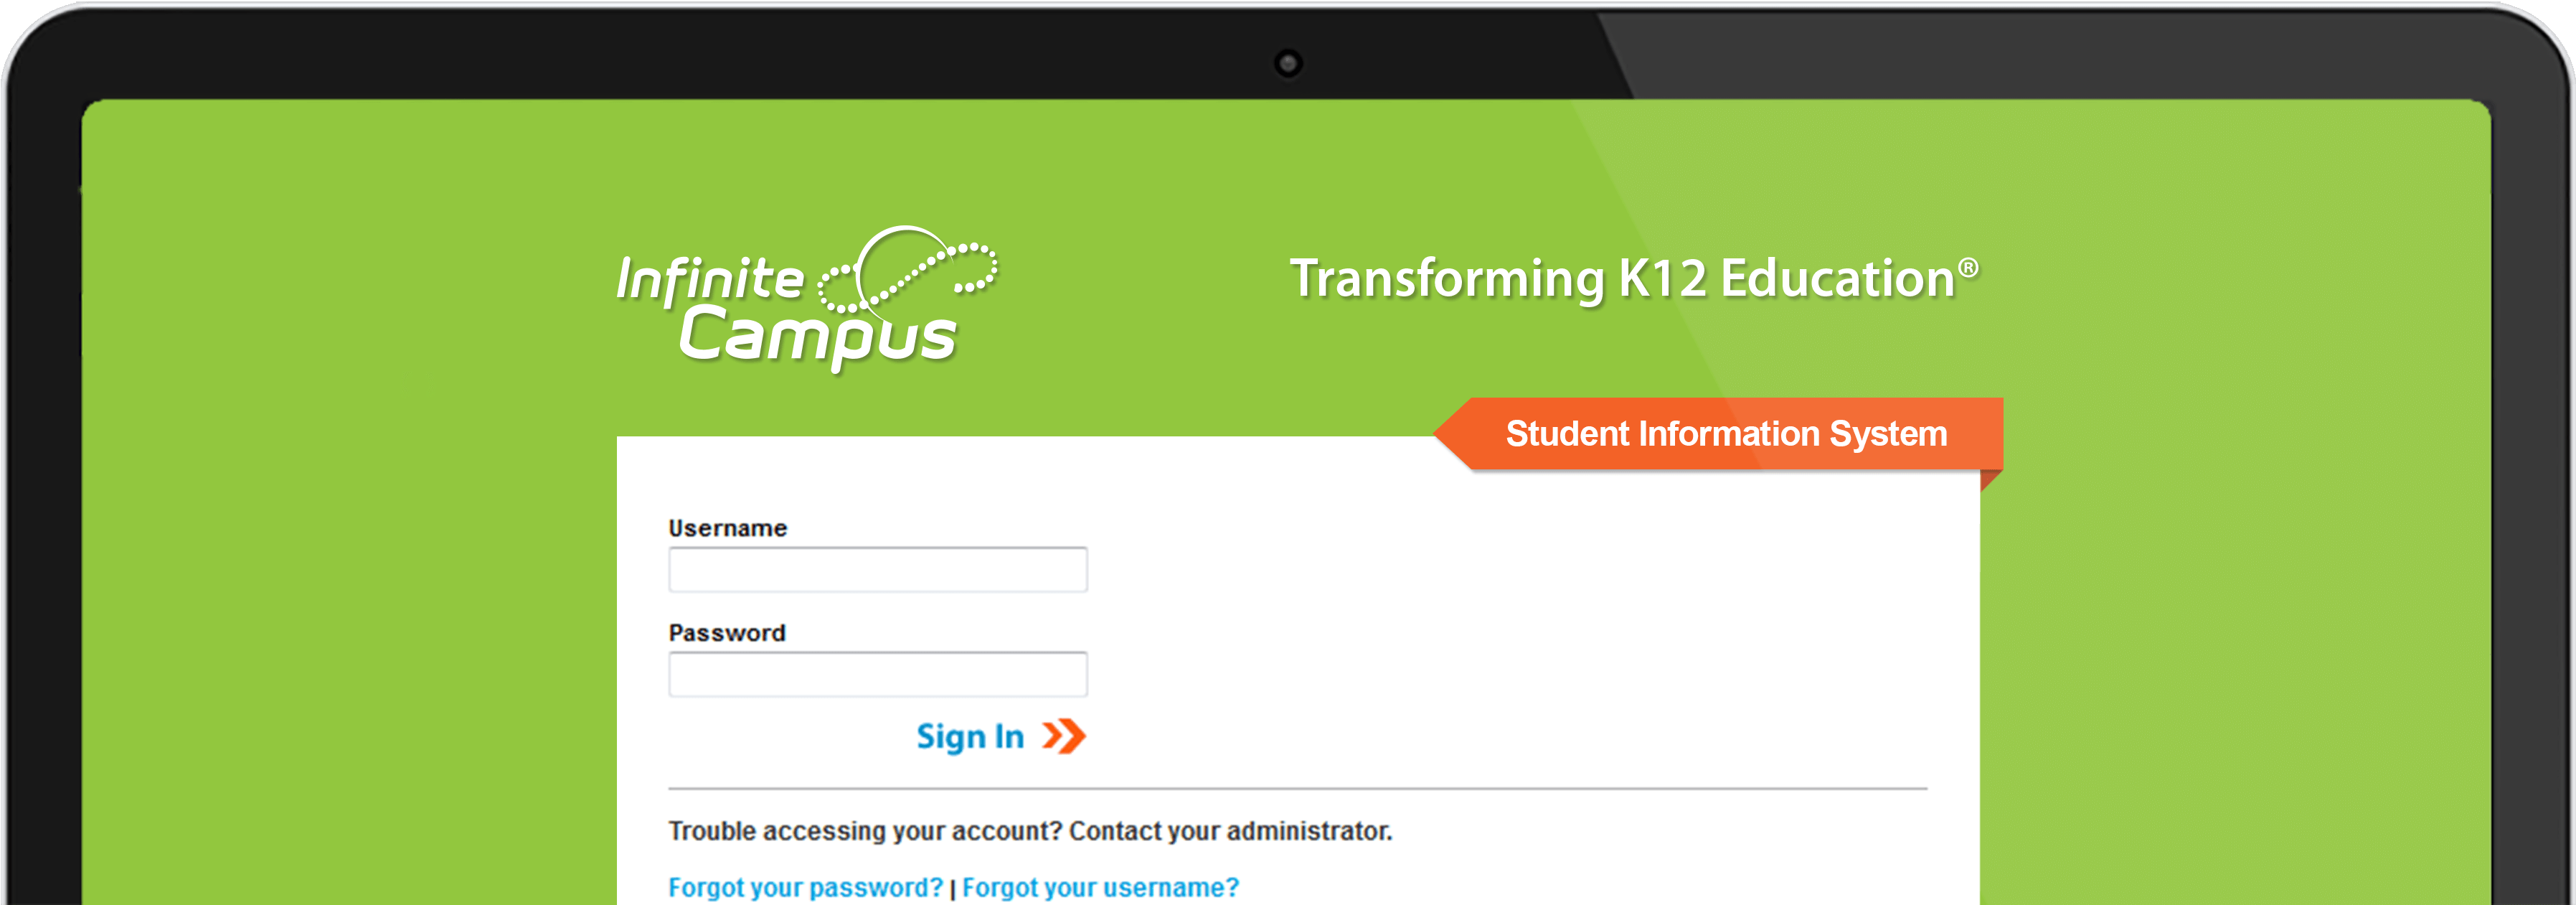 Student Information System Infinite Campus